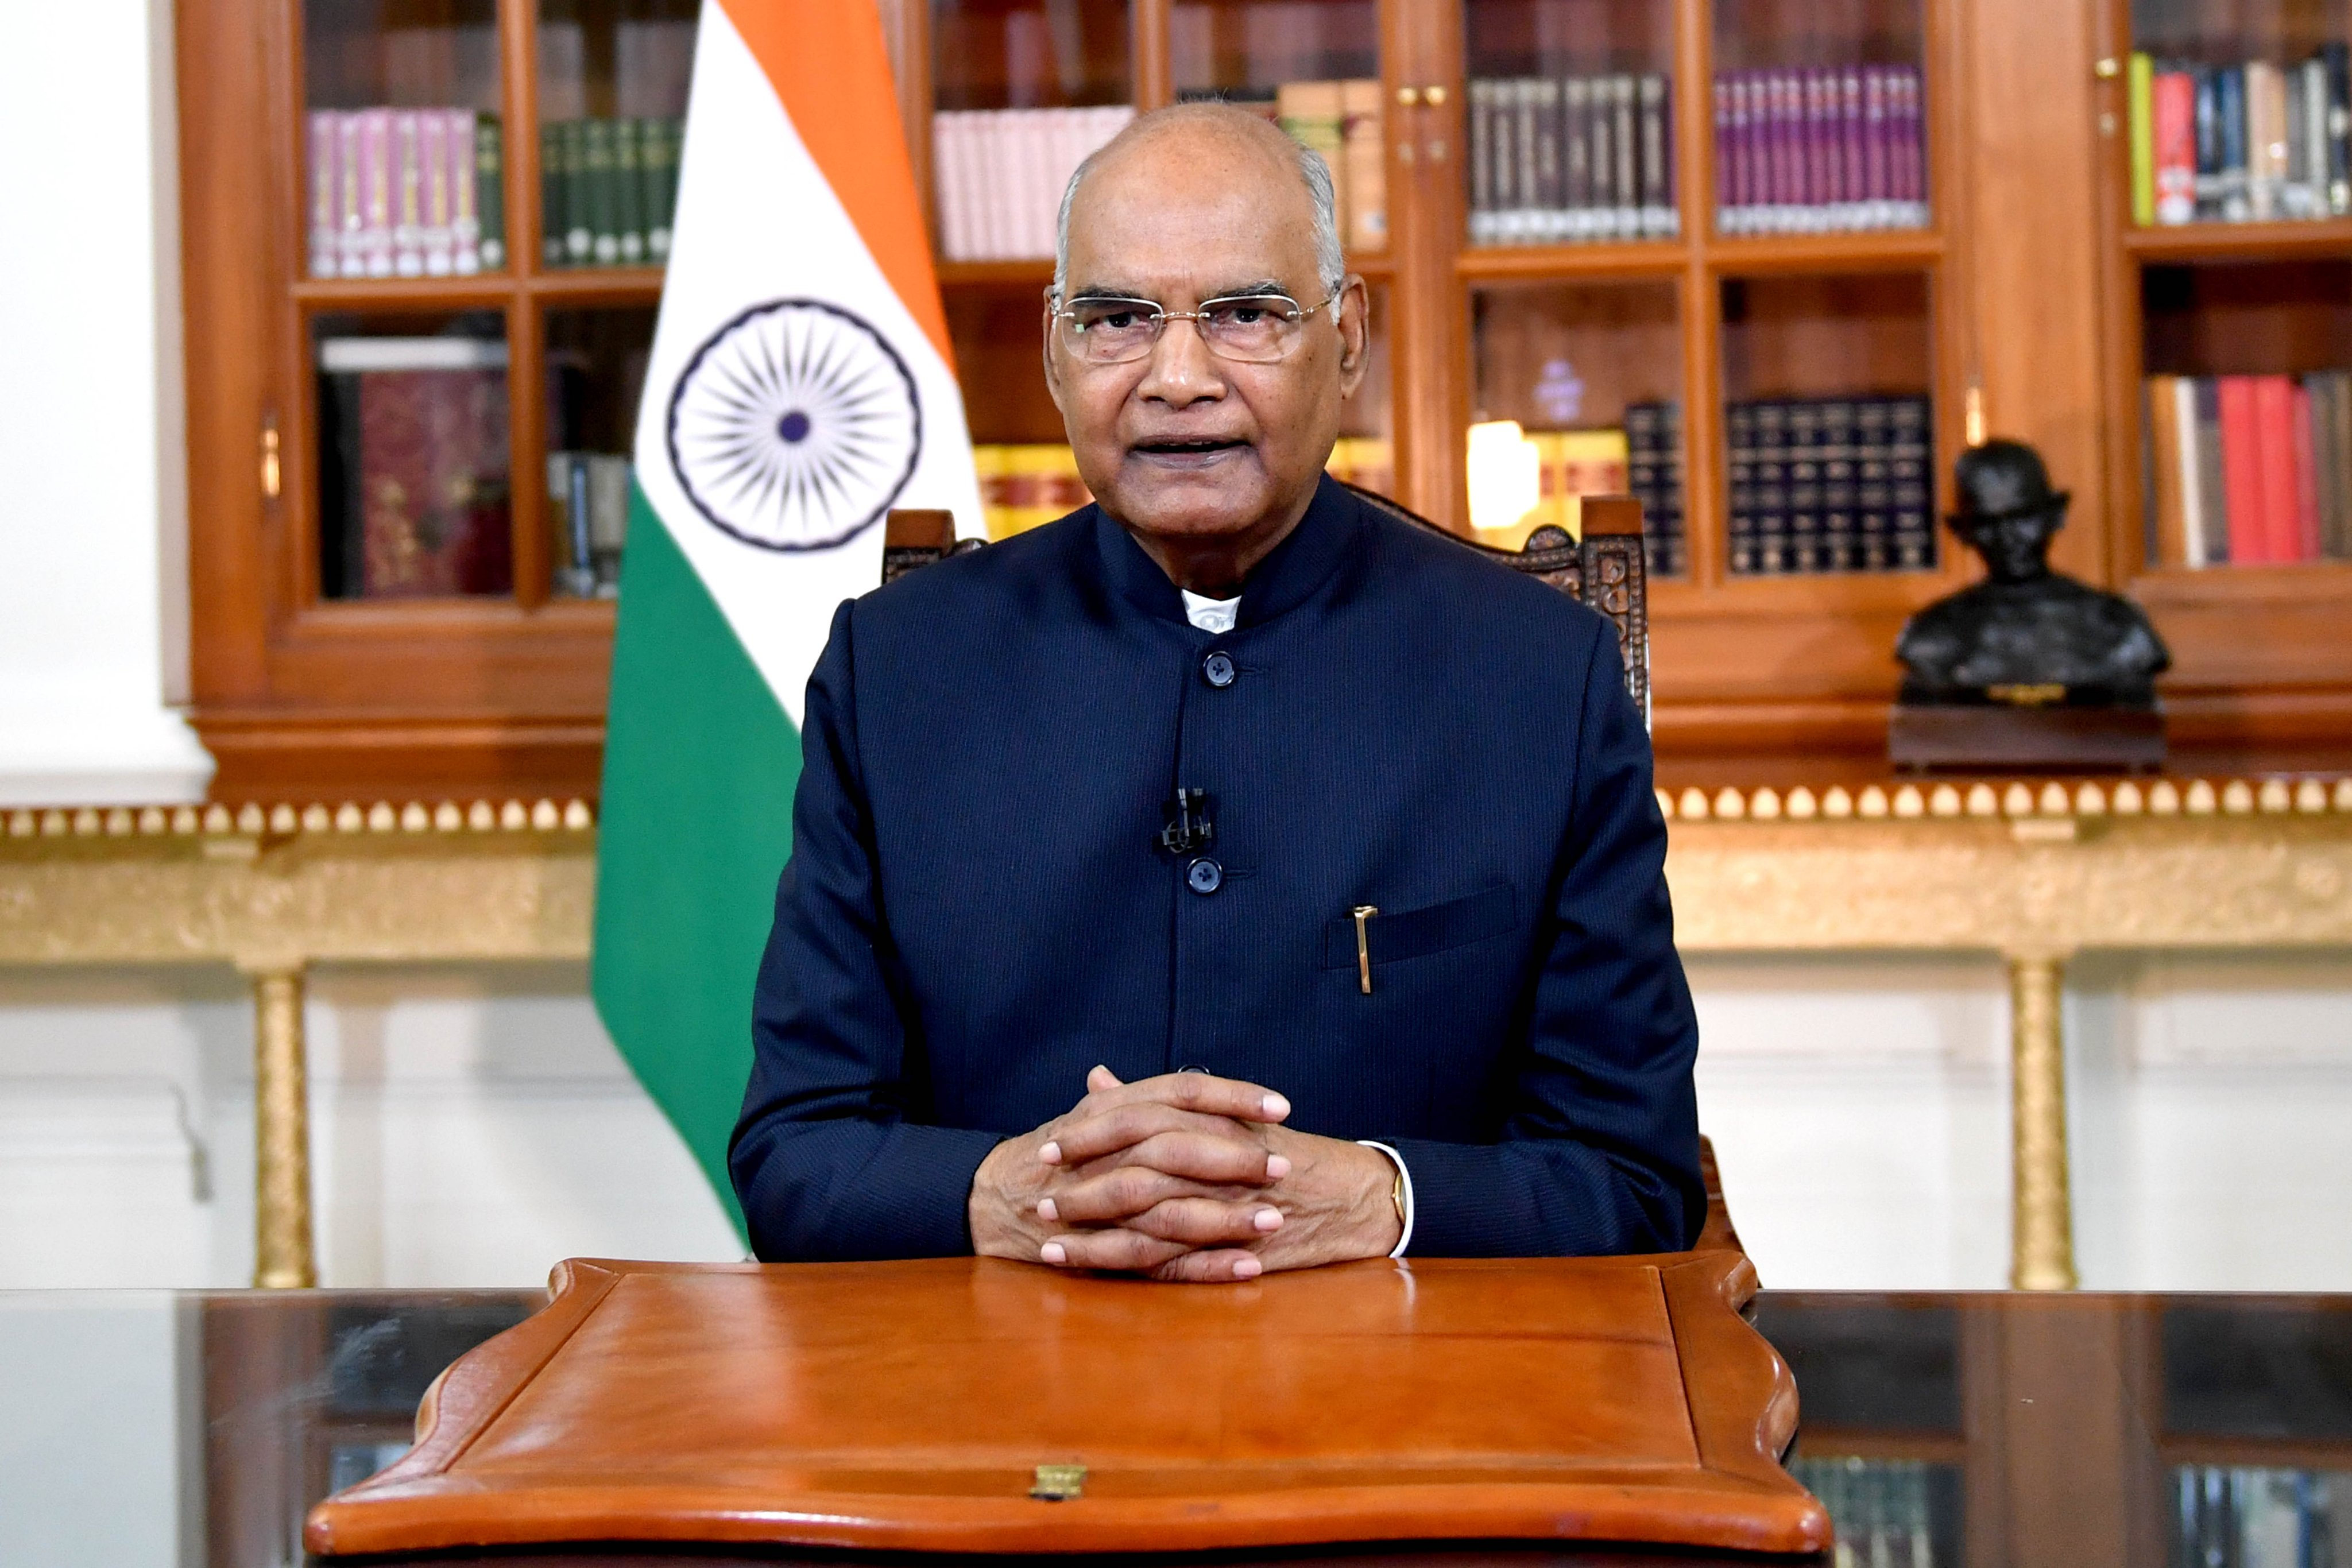 President of India's Address to the Nation on the eve of 75th Independence Day of India